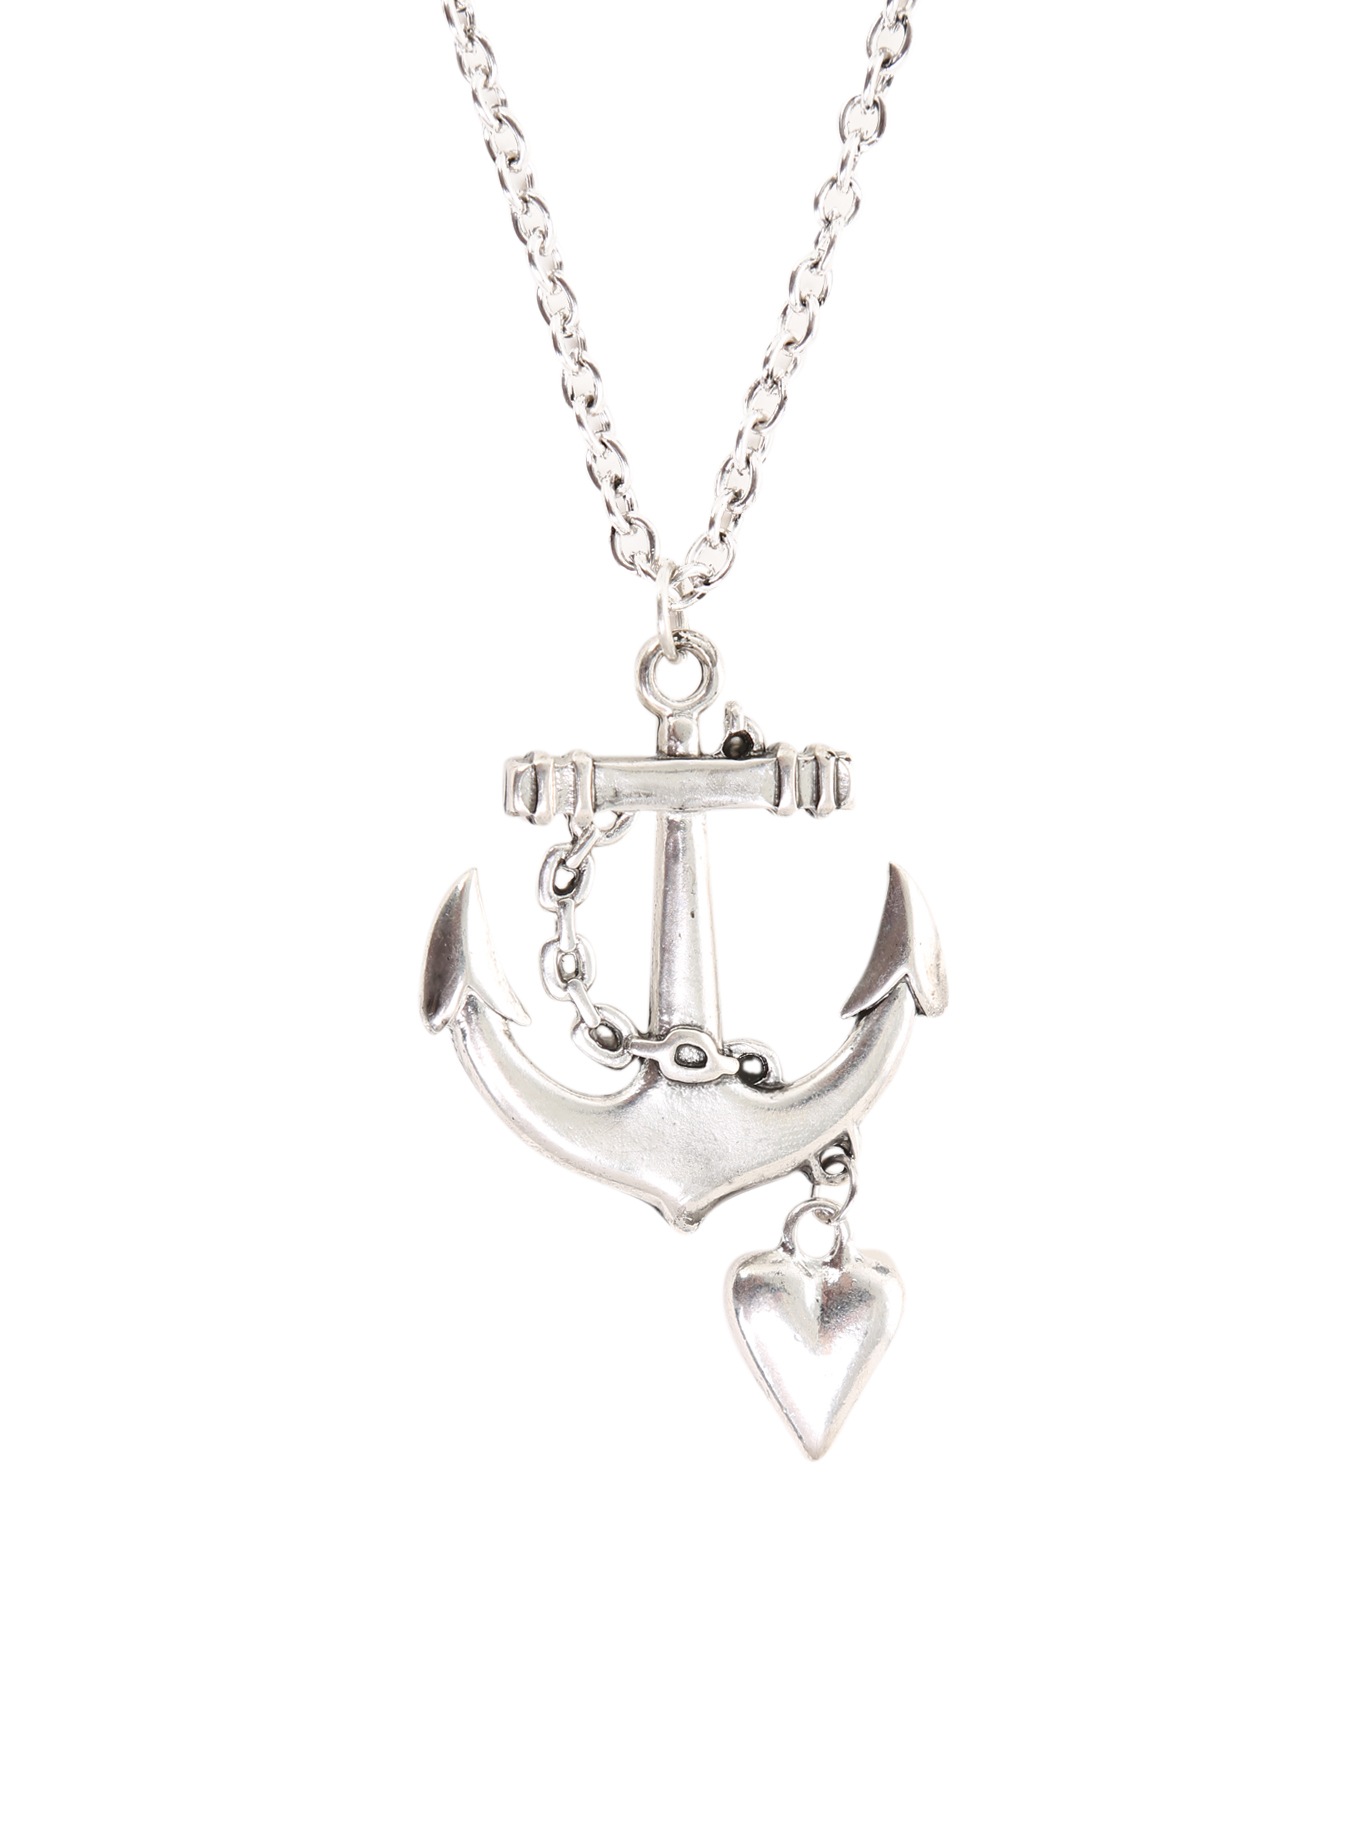 Lovesick Anchor Heart Necklace